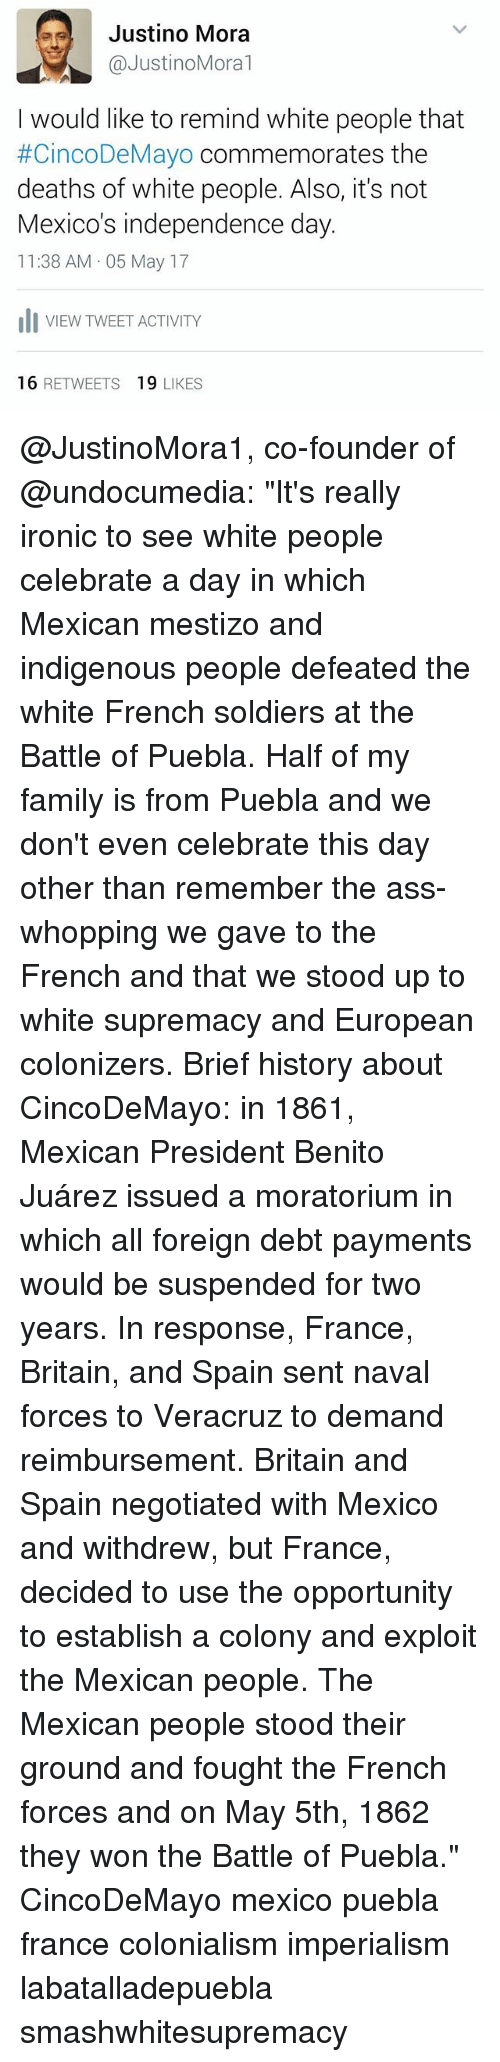 """Exploitable: es Justino Mora  @Justino Moral  I would like to remind white people that  #CincoDeMayo commemorates the  deaths of white people. Also, it's not  Mexico's independence day.  11:38 AM 05 May 17  Ili VIEW TWEET ACTIVITY  16  RETWEETS  19  LIKES @JustinoMora1, co-founder of @undocumedia: """"It's really ironic to see white people celebrate a day in which Mexican mestizo and indigenous people defeated the white French soldiers at the Battle of Puebla. Half of my family is from Puebla and we don't even celebrate this day other than remember the ass-whopping we gave to the French and that we stood up to white supremacy and European colonizers. Brief history about CincoDeMayo: in 1861, Mexican President Benito Juárez issued a moratorium in which all foreign debt payments would be suspended for two years. In response, France, Britain, and Spain sent naval forces to Veracruz to demand reimbursement. Britain and Spain negotiated with Mexico and withdrew, but France, decided to use the opportunity to establish a colony and exploit the Mexican people. The Mexican people stood their ground and fought the French forces and on May 5th, 1862 they won the Battle of Puebla."""" CincoDeMayo mexico puebla france colonialism imperialism labatalladepuebla smashwhitesupremacy"""